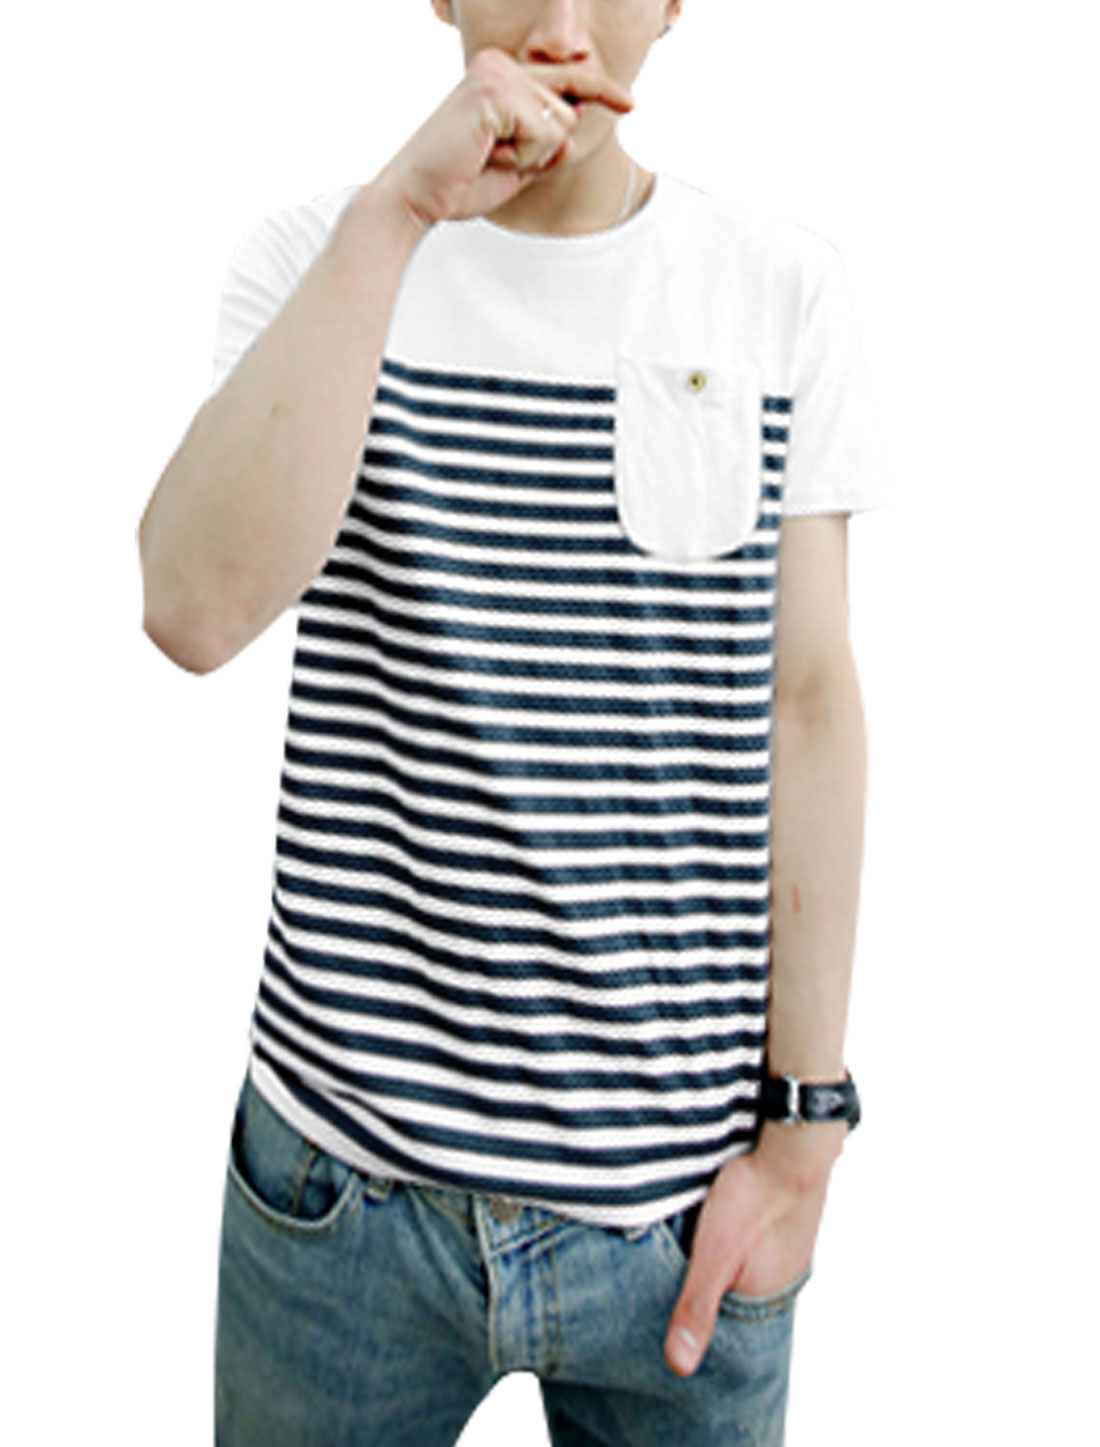 Men Stripes Print Panel Chest Pocket Pullover Tee Shirt White Navy Blue M